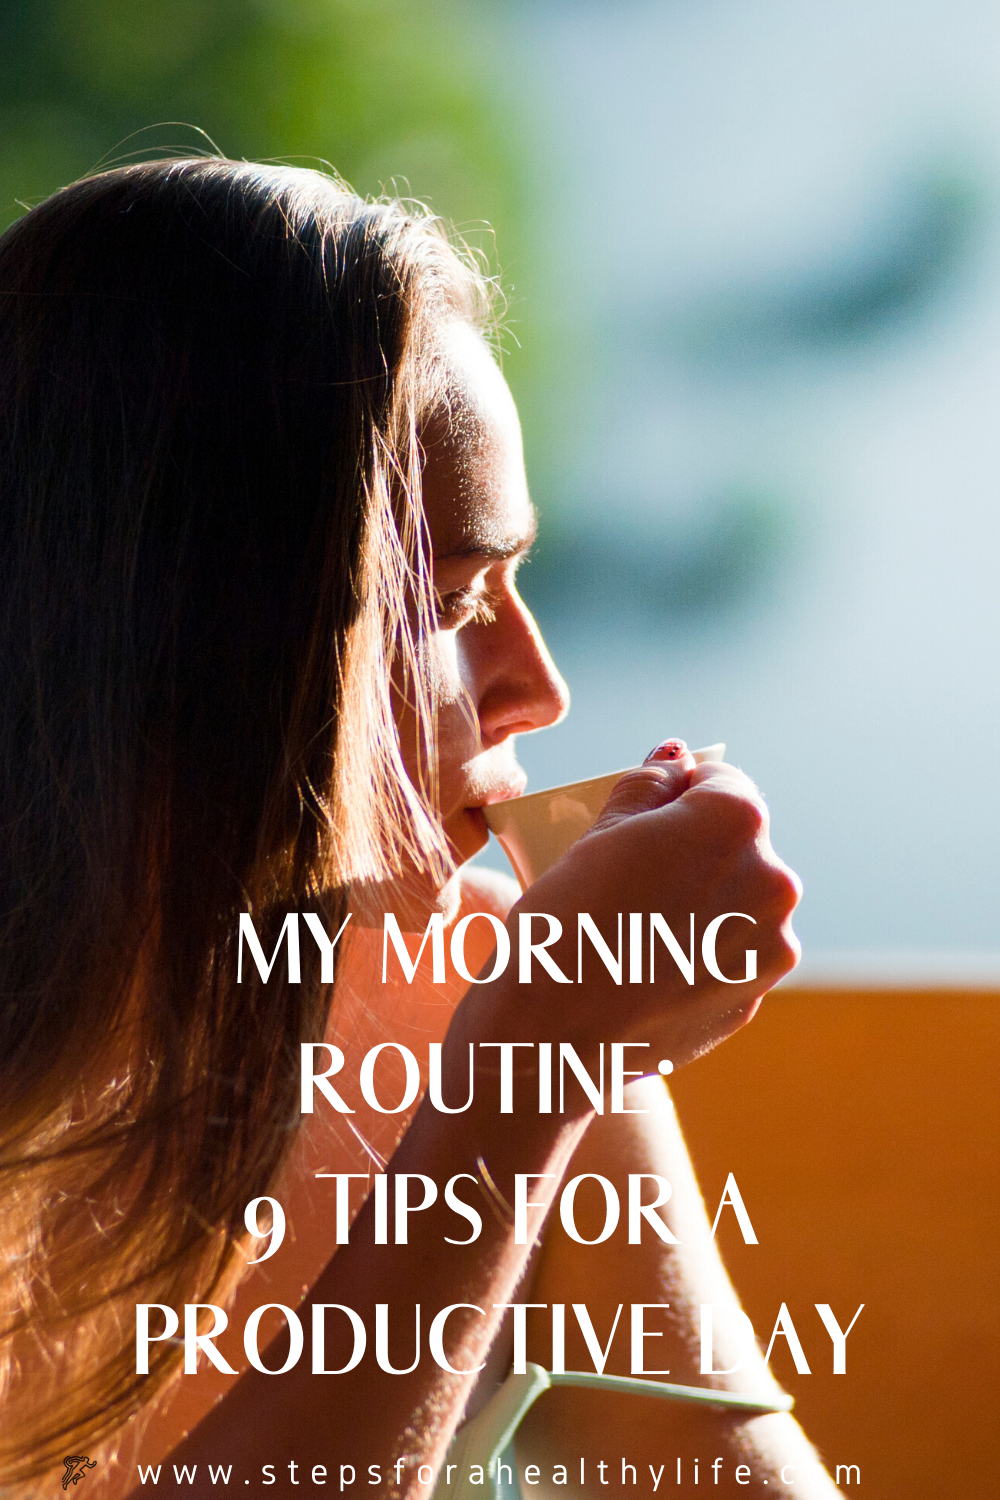 MY MORNING ROUTINE: 9 TIPS FOR A PRODUCTIVE DAY🌄